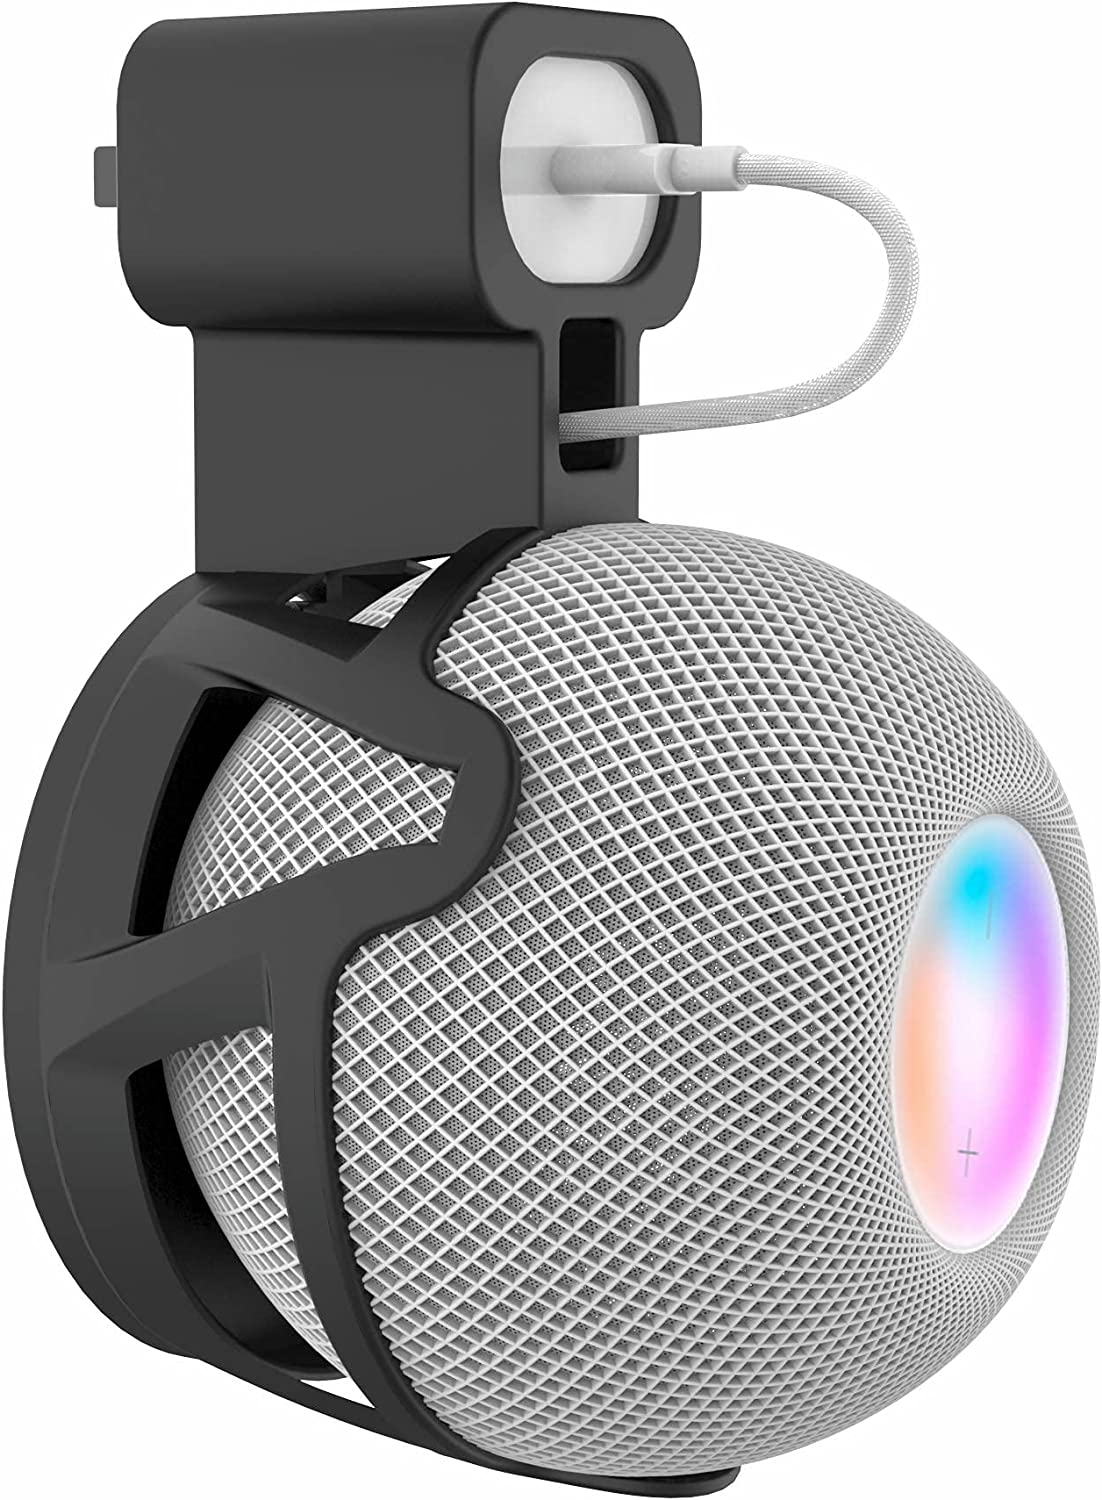 Ouligei Top-Notch Quality Homepod Mini Speaker Wall Mount (Black/White) with in-Built Cable Management System, No Screws or Drill Needed, Bracket for Homepod Mini - an Elegant Space Saving Accessory